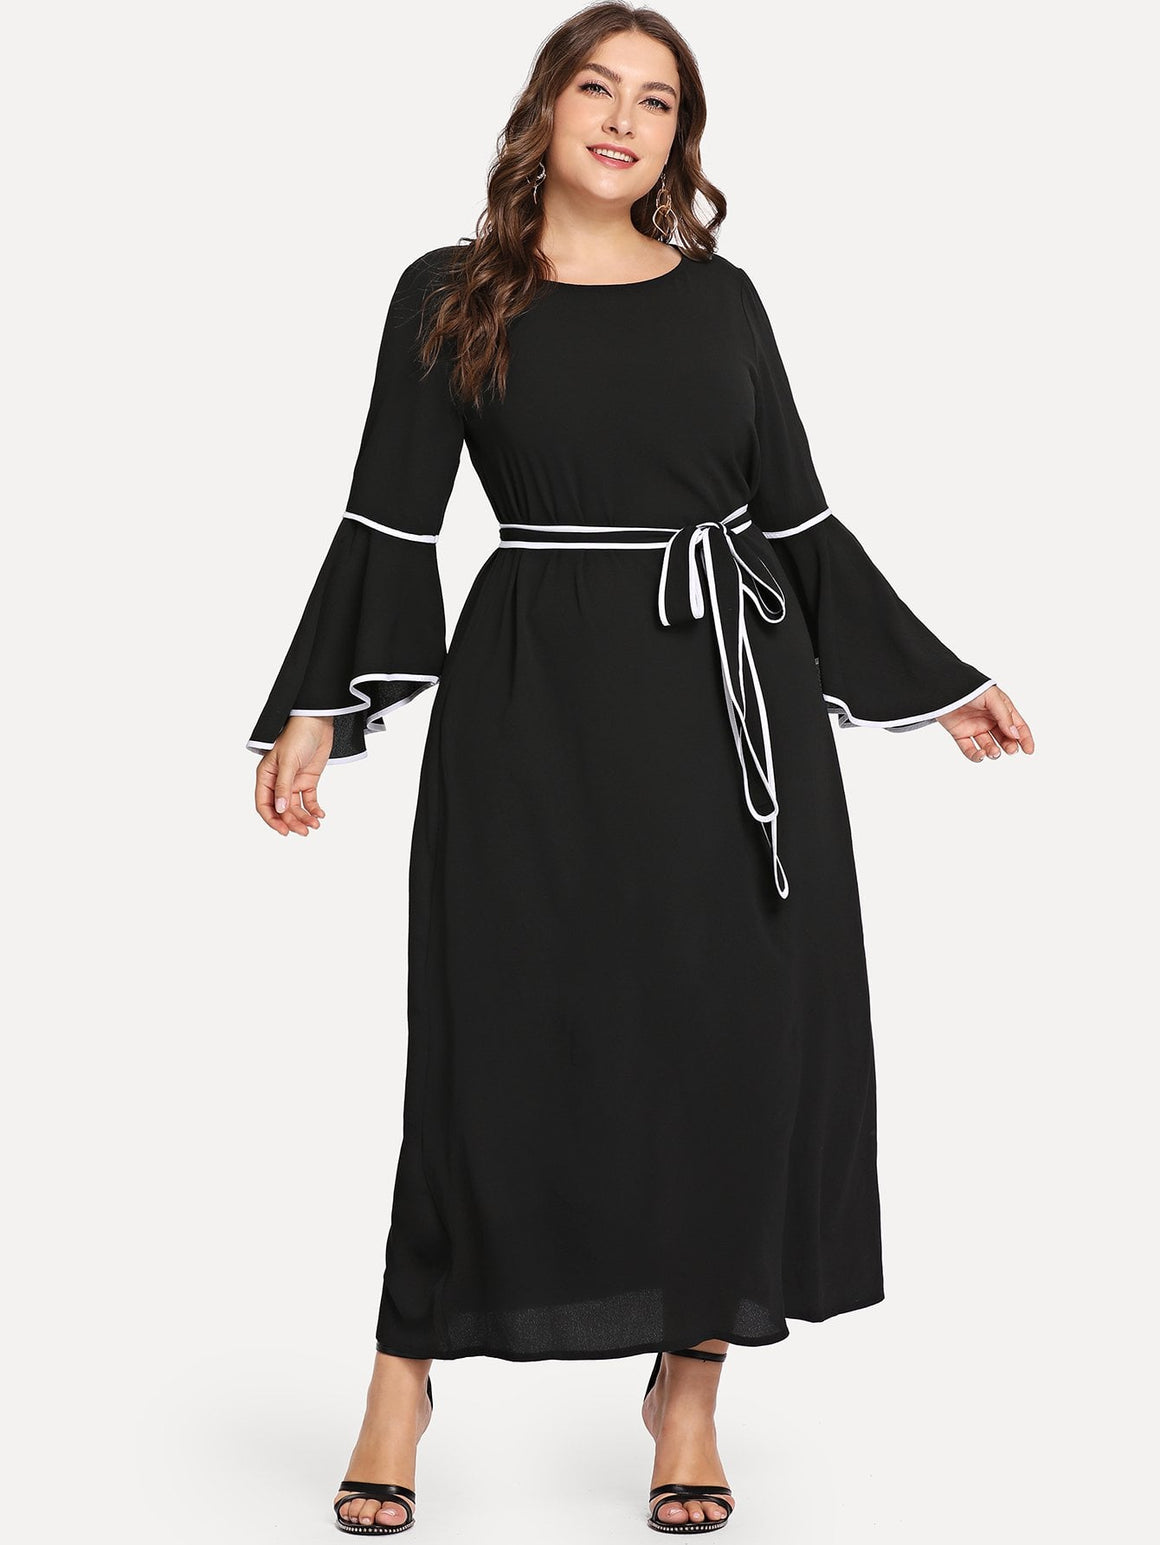 Frill Trim Belted Dress